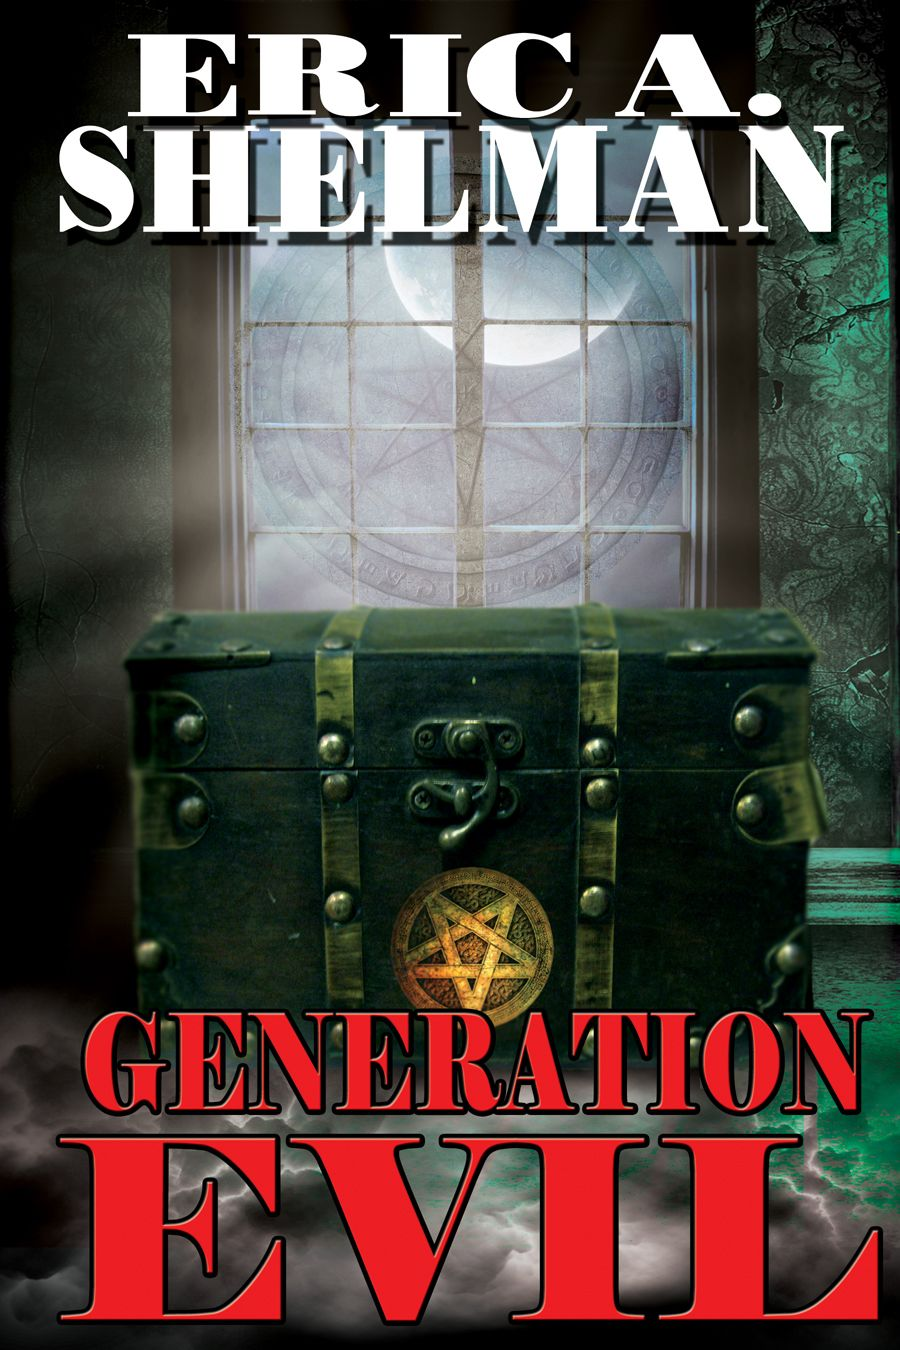 46+ Generation kill book pictures information